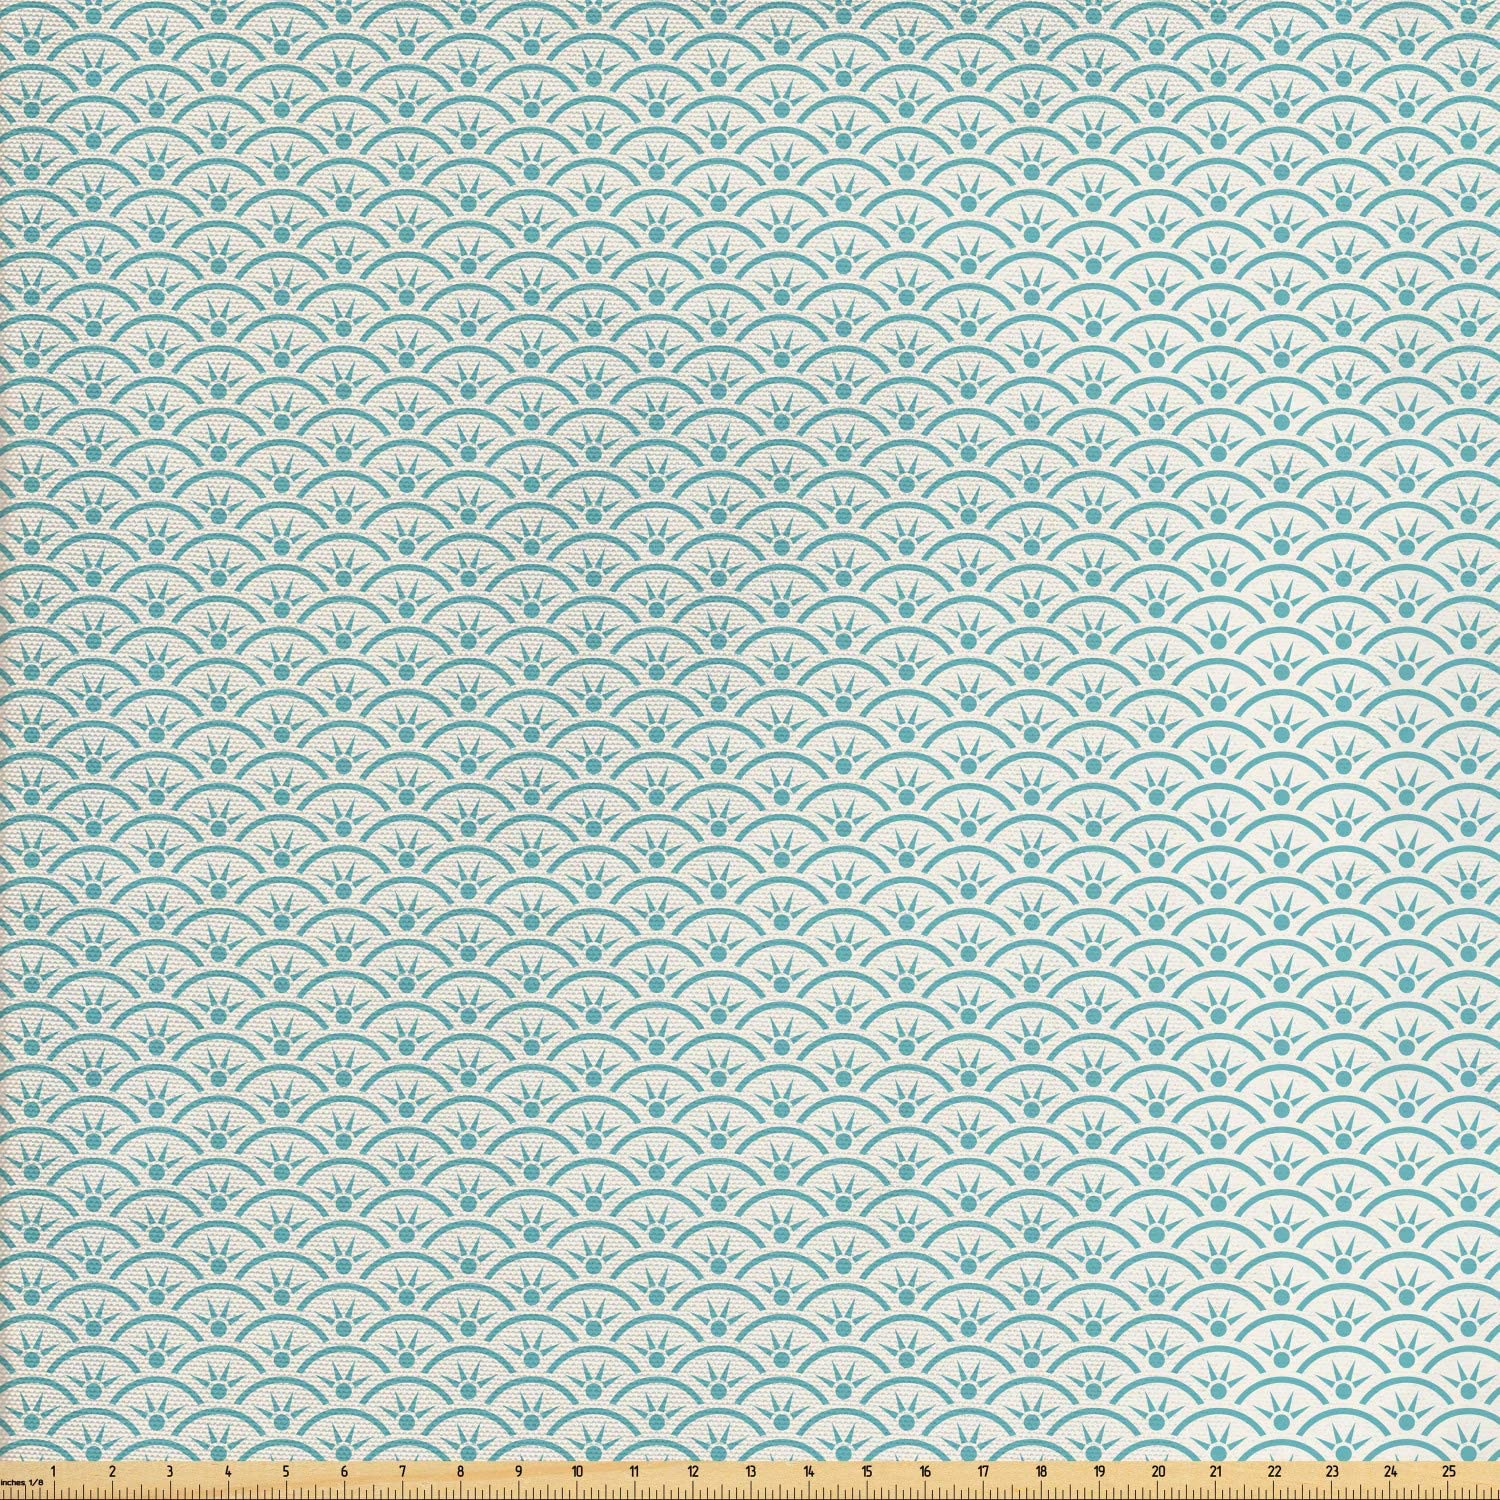 Ambesonne Japanese Fabric by The Yard, Ocean Illustration Curvy Rippled Aqua Bubbly Sun and Rays, Decorative Fabric for Upholstery and Home Accents, 1 Yard, Sky Blue White